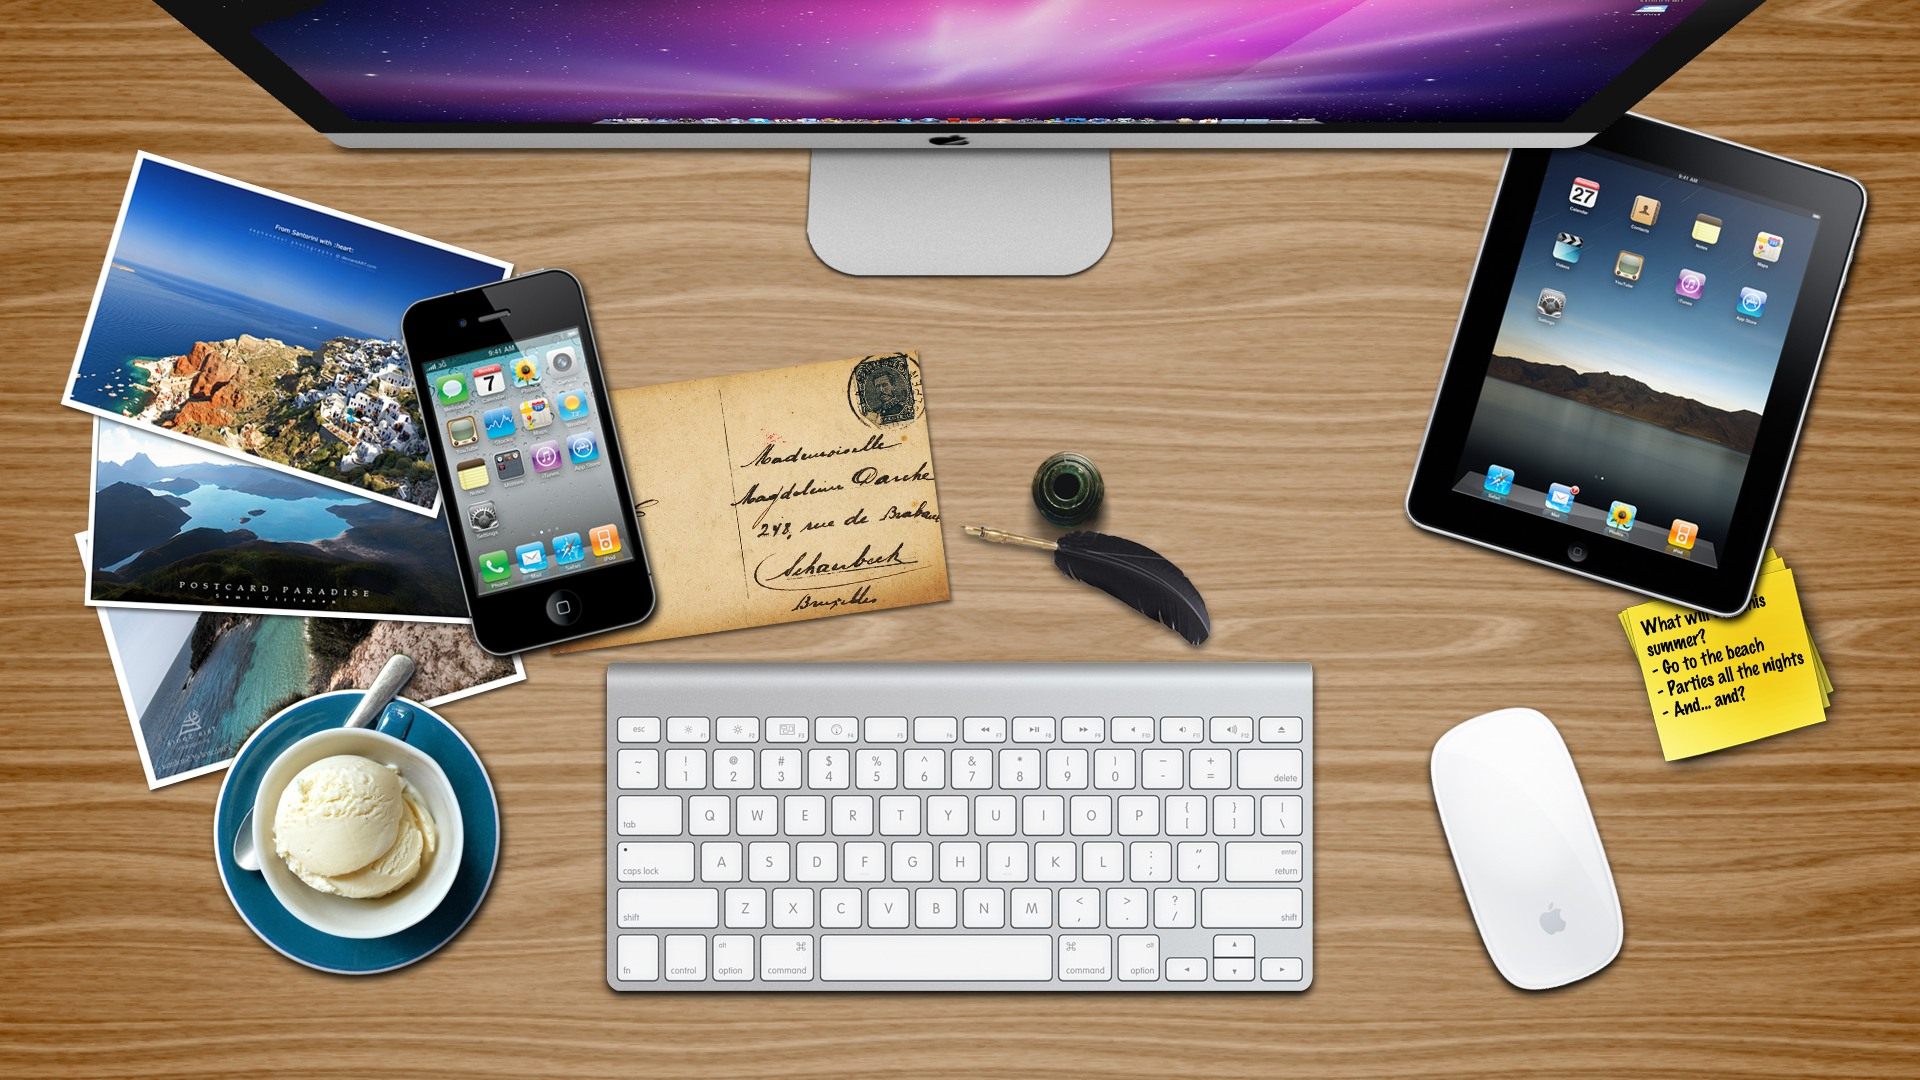 wallpapers for office. Theme Bin Blog Archive Apple Desk Summer Edition HD Wallpaper 1920x1080 Wallpapers For Office